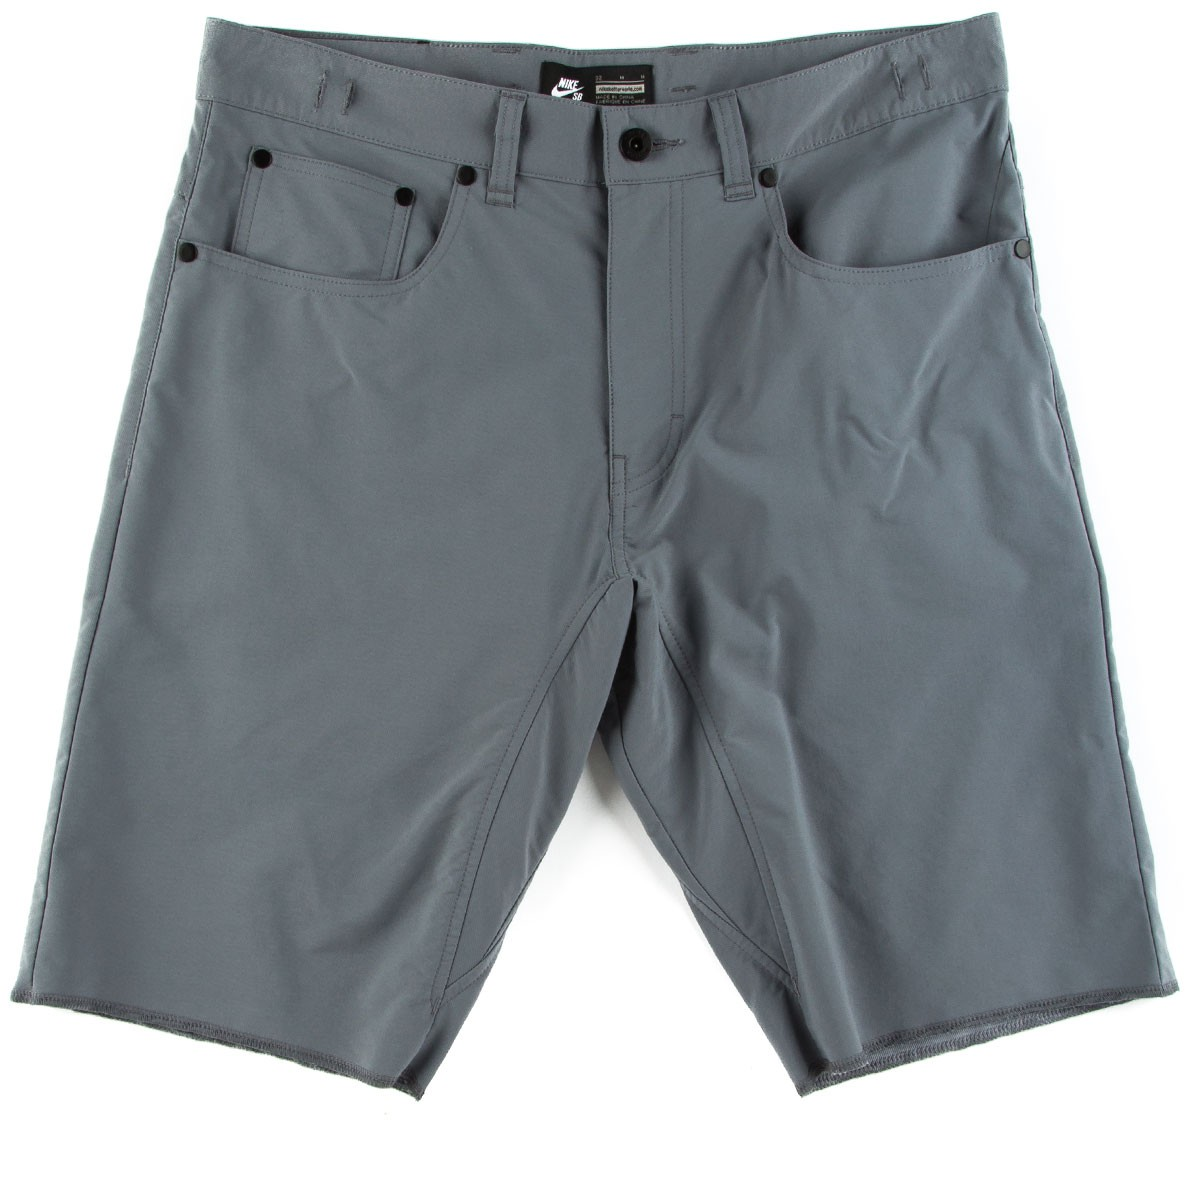 09c244328 nike-sb-ftm-dri-fit-stretch-shorts-grey-1.1506919171.jpg